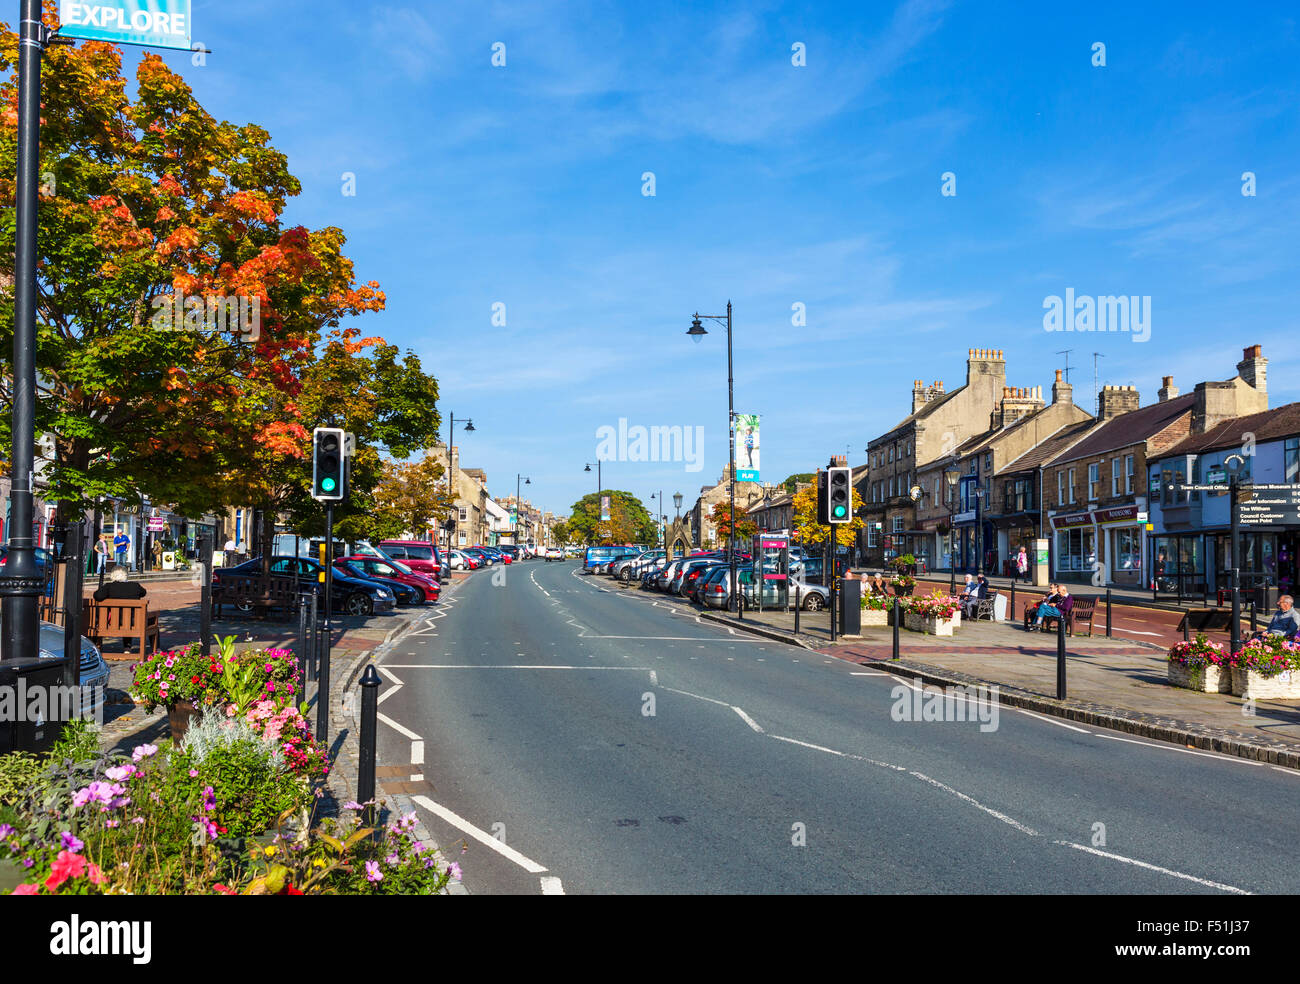 Galgate in the town centre, Barnard Castle, County Durham, England, UK - Stock Image